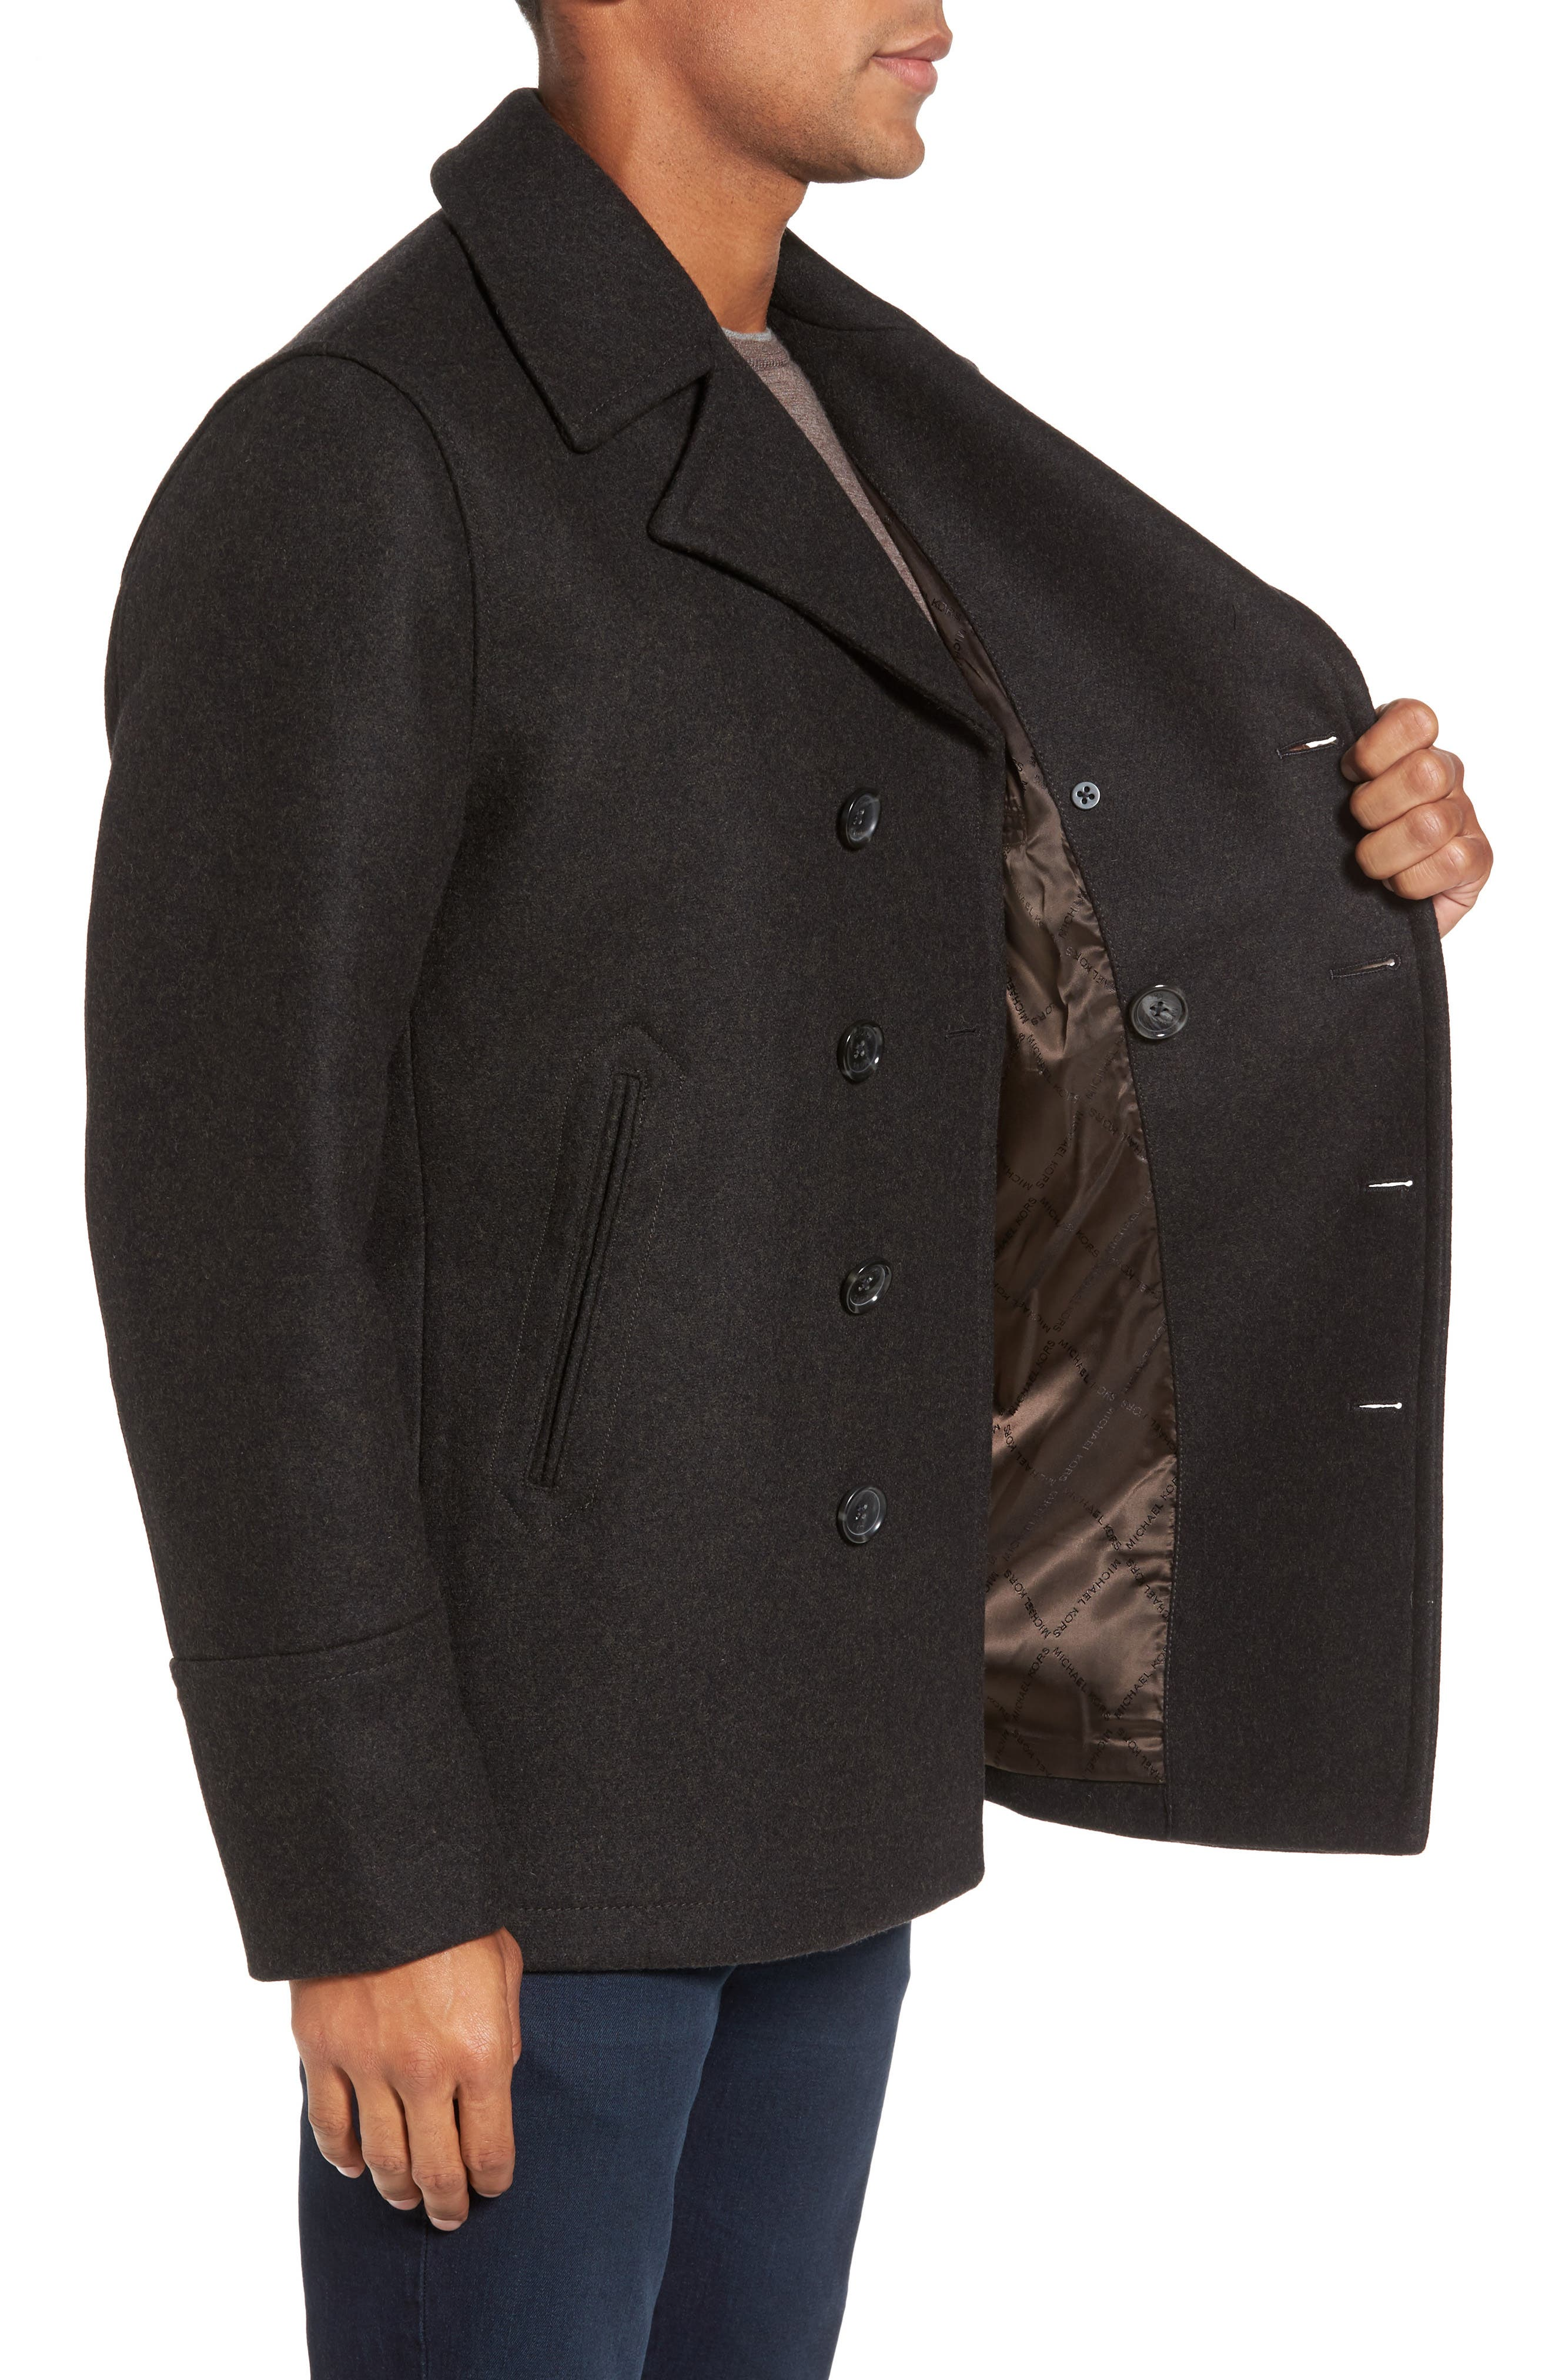 Wool Blend Peacoat,                             Alternate thumbnail 3, color,                             Loden Heather